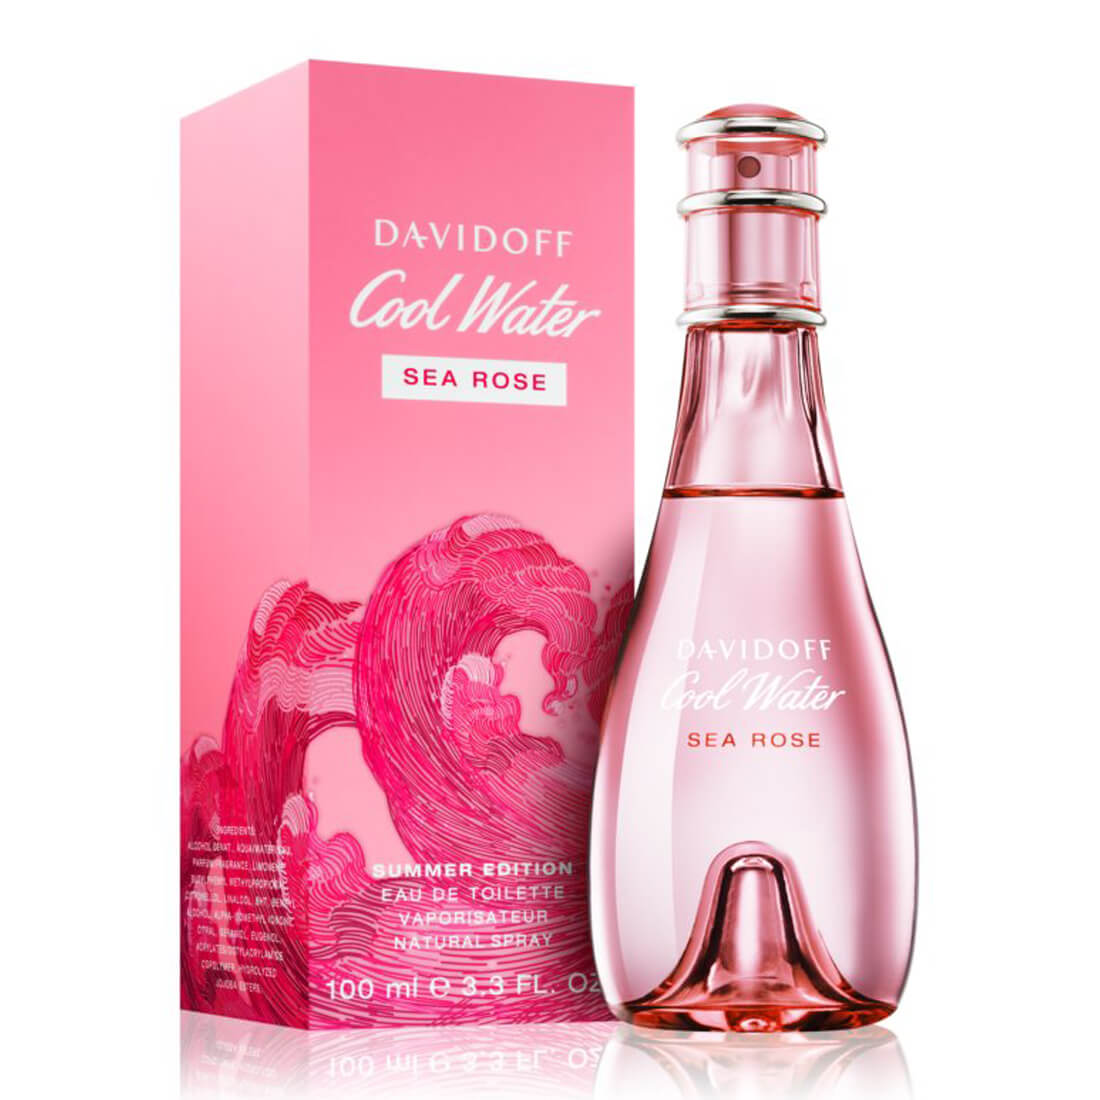 Davidoff Cool Water Sea Rose Summer Edition 2019 Eau De Toilette For Women 100ml